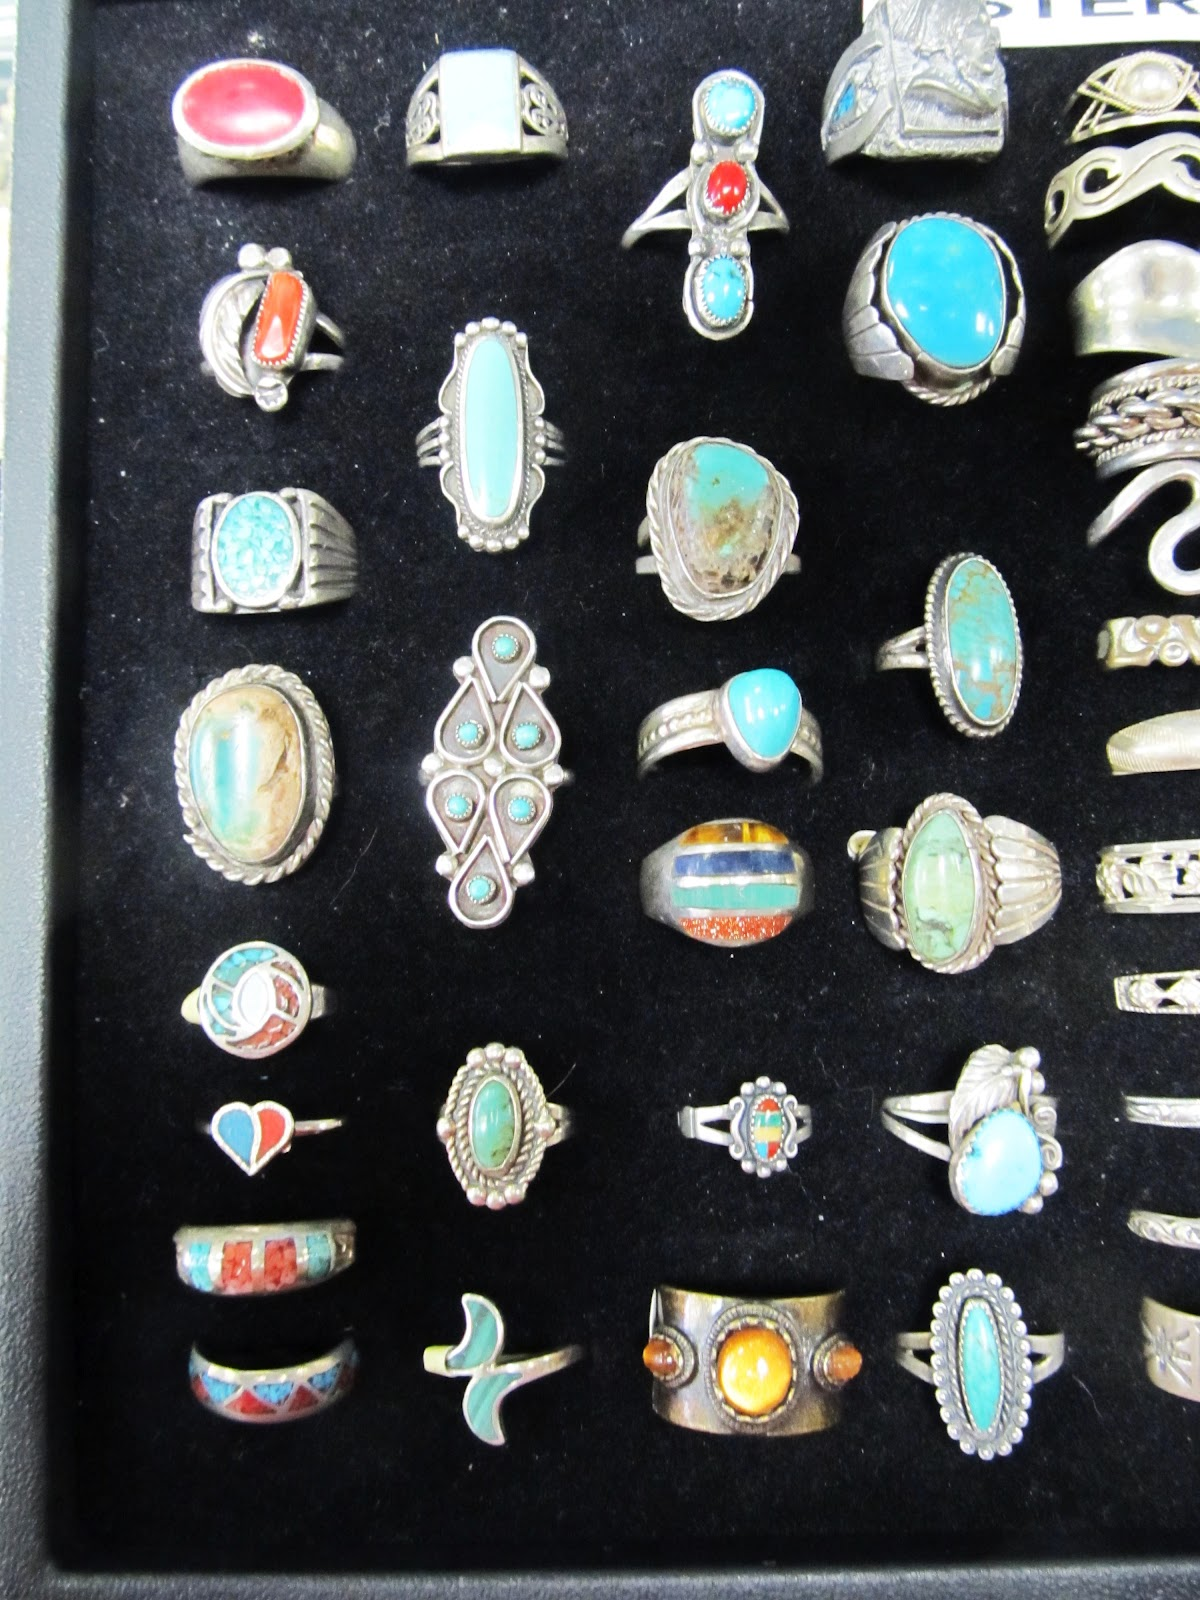 Online Thrift Store Deals And Unique Gift Ideas Native